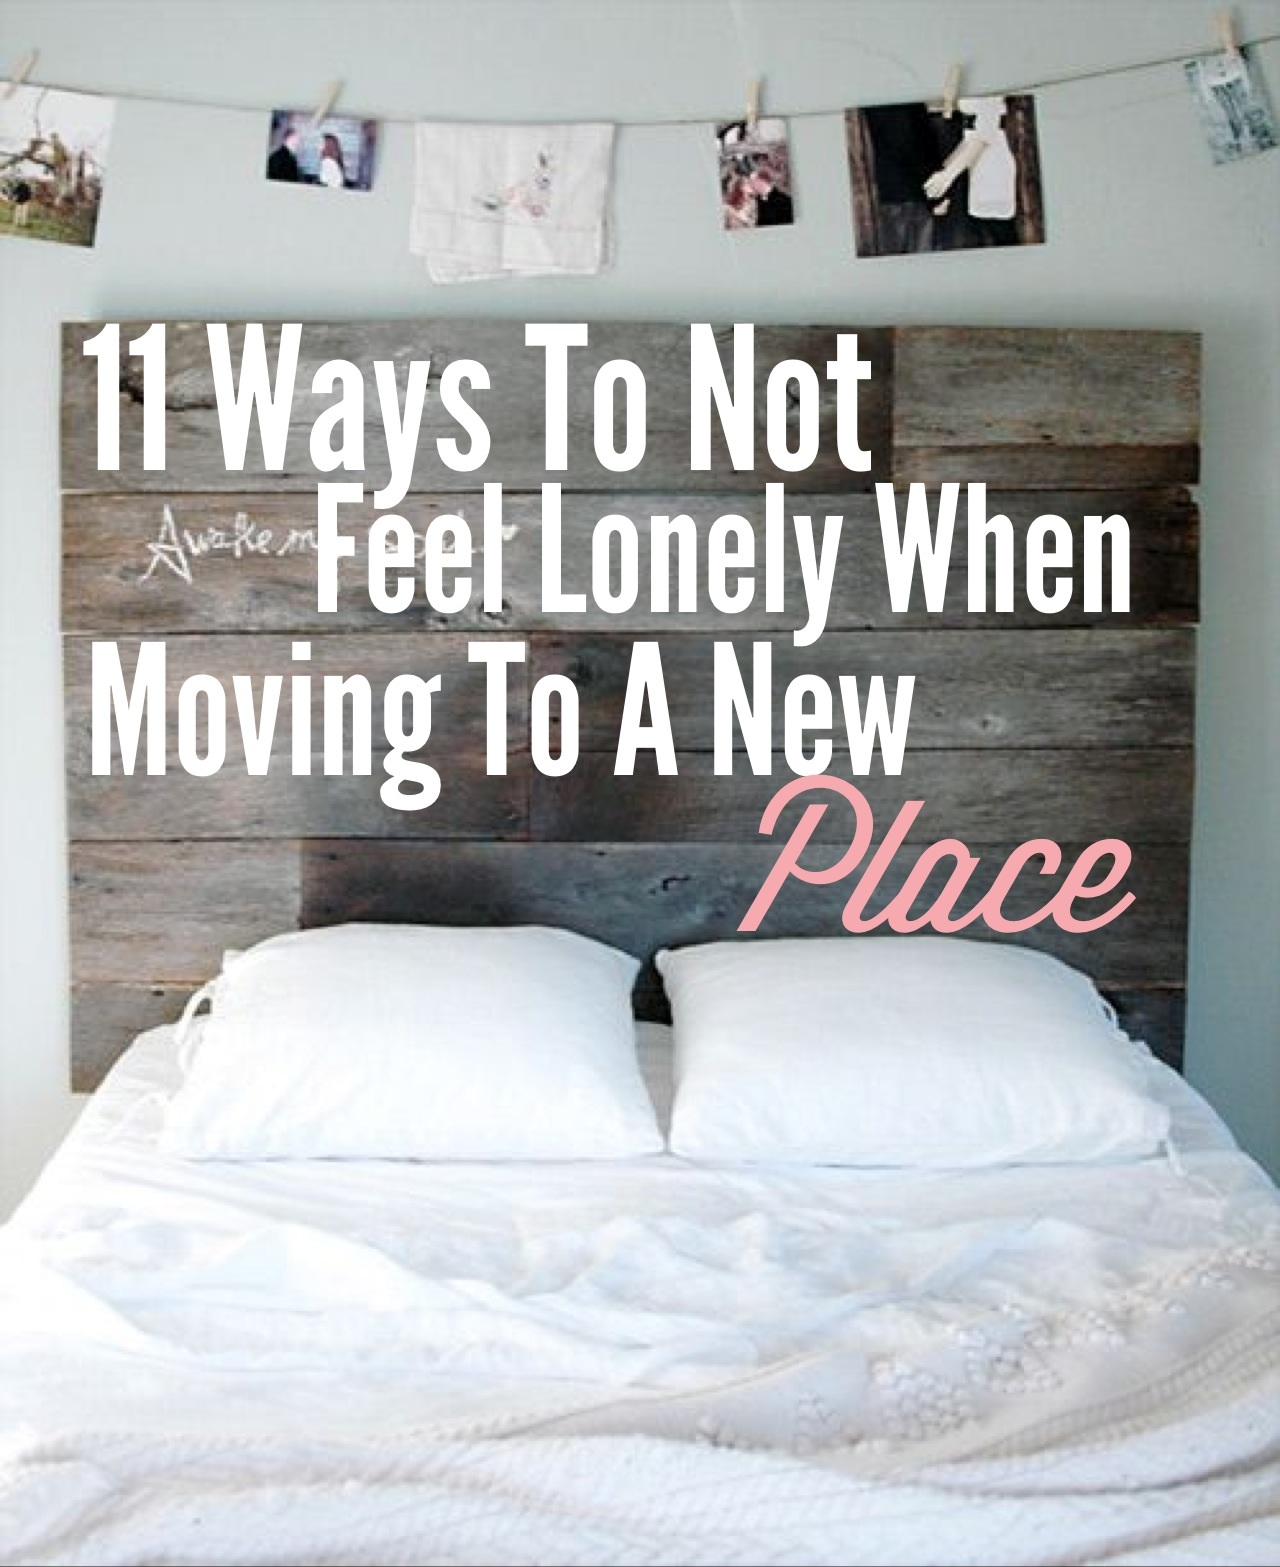 11 Ways To Not Feel Lonely When Moving To A New Place